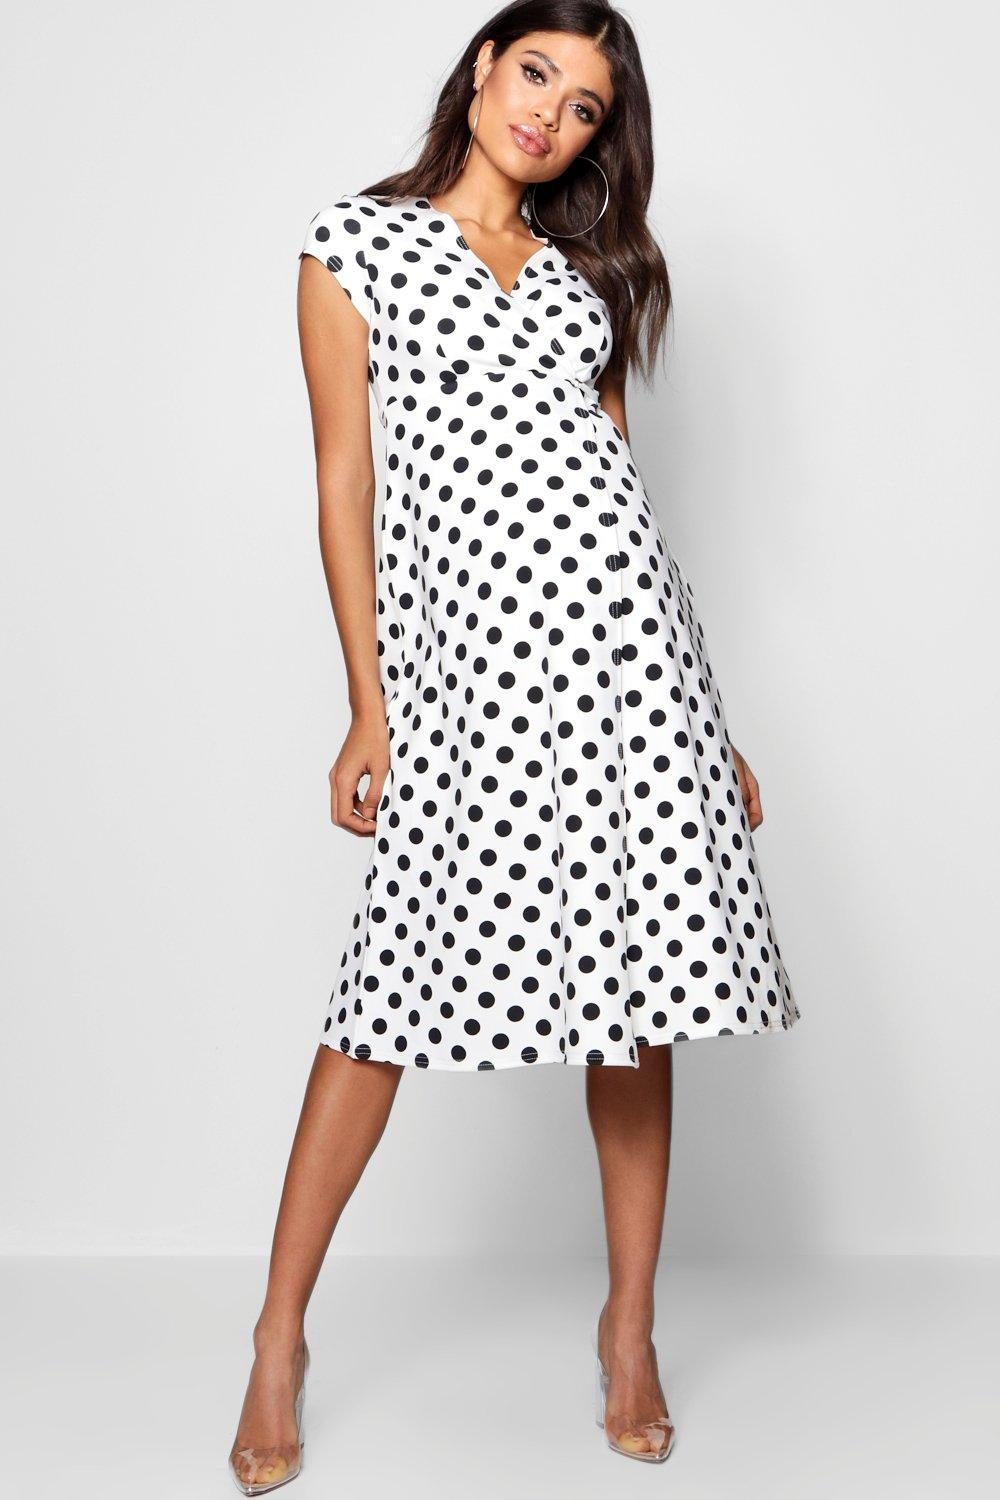 Vintage Maternity Clothes History Womens Maternity Polka Dot Wrap Dress - white - 16 $27.00 AT vintagedancer.com